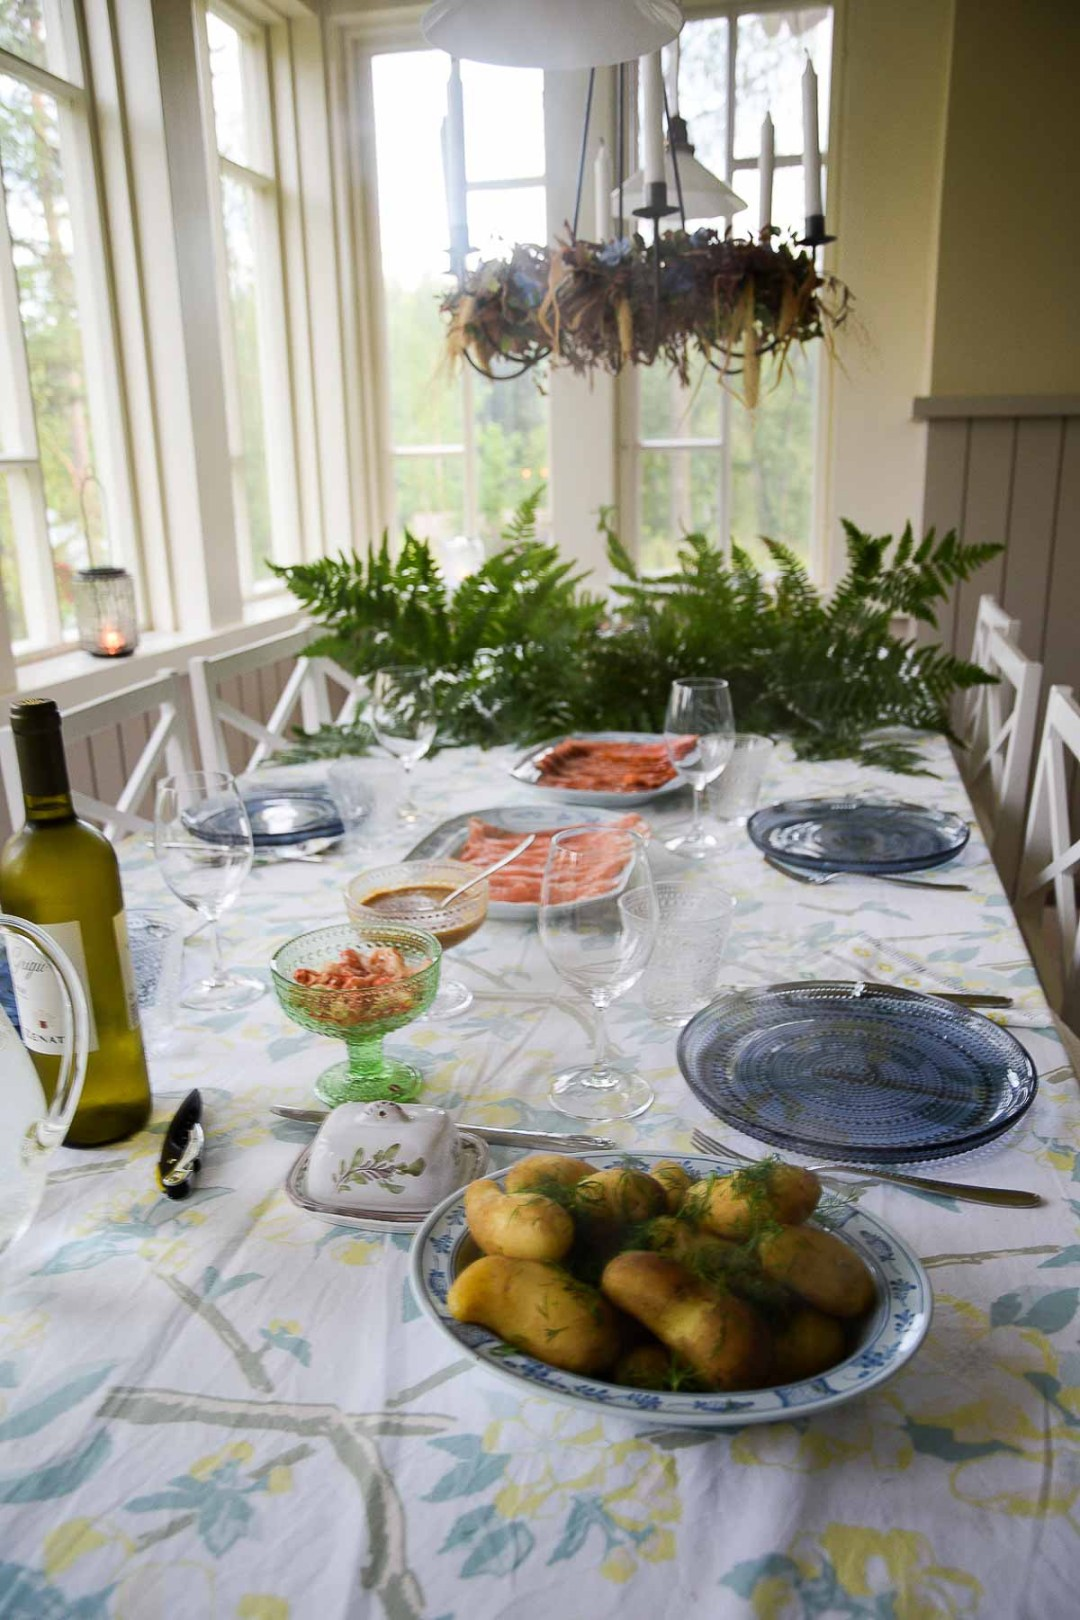 A lovely dining room table in Finland with wine, potatoes, and salmon.